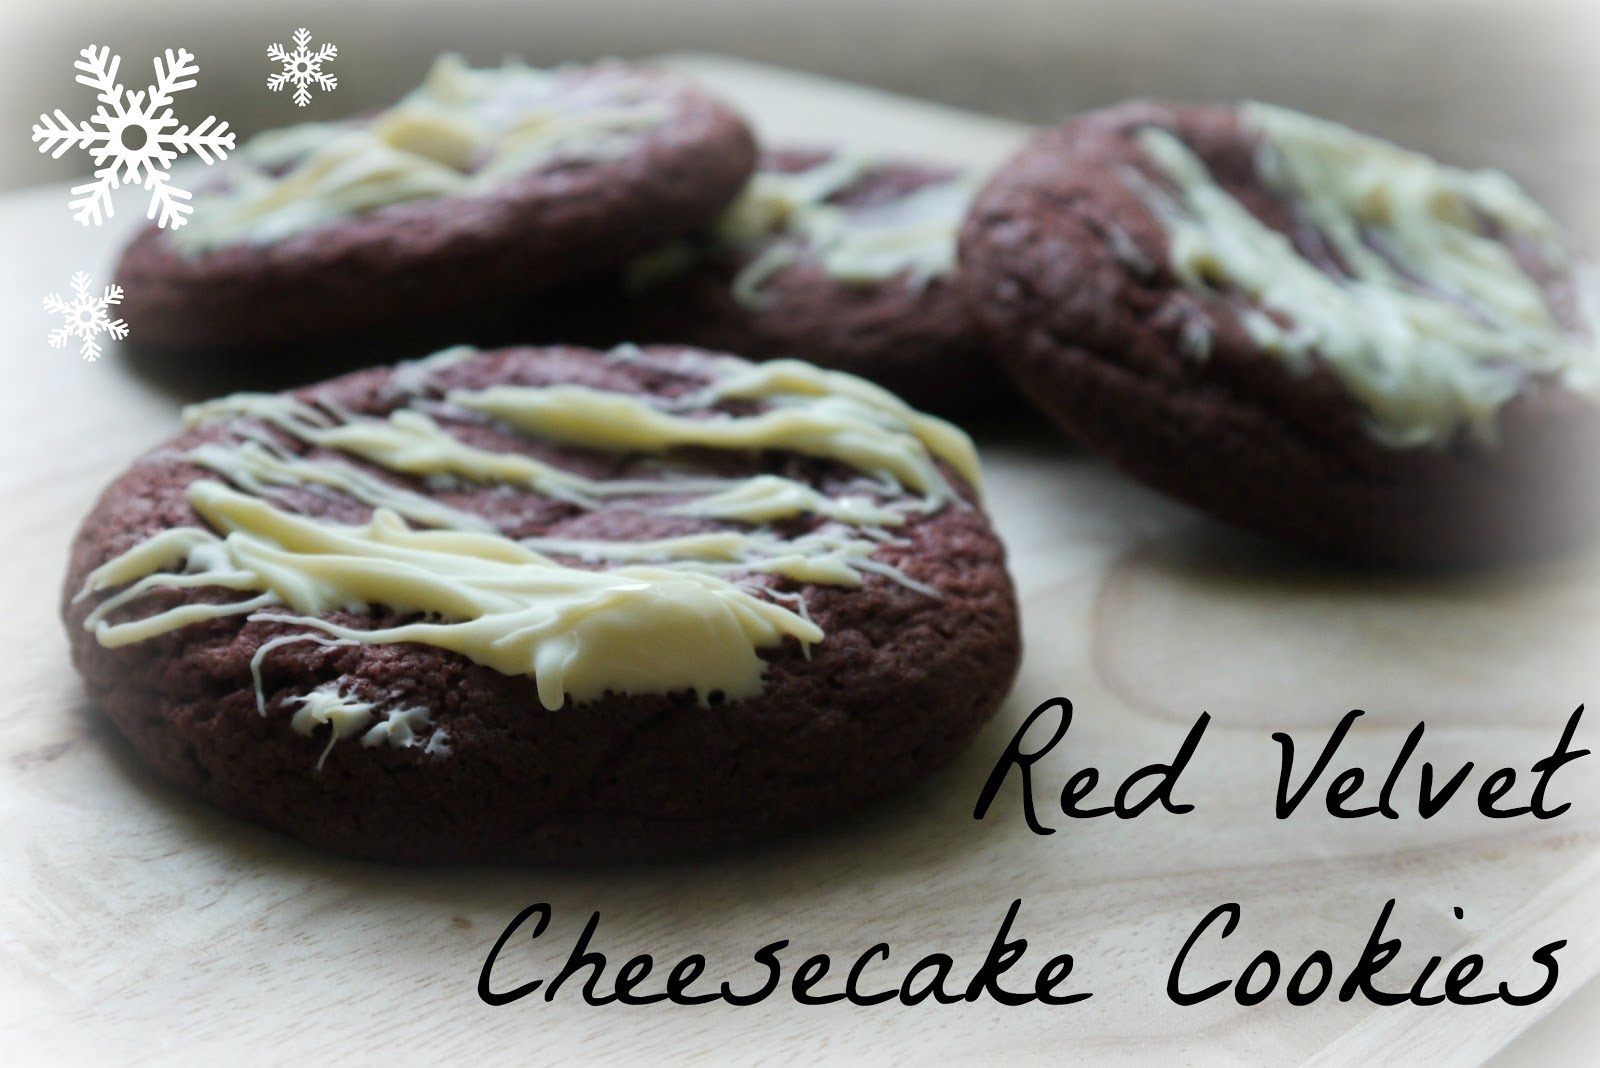 Heron's Crafts: Christmas Cookie Swap - Red Velvet Cheesecake Cookies